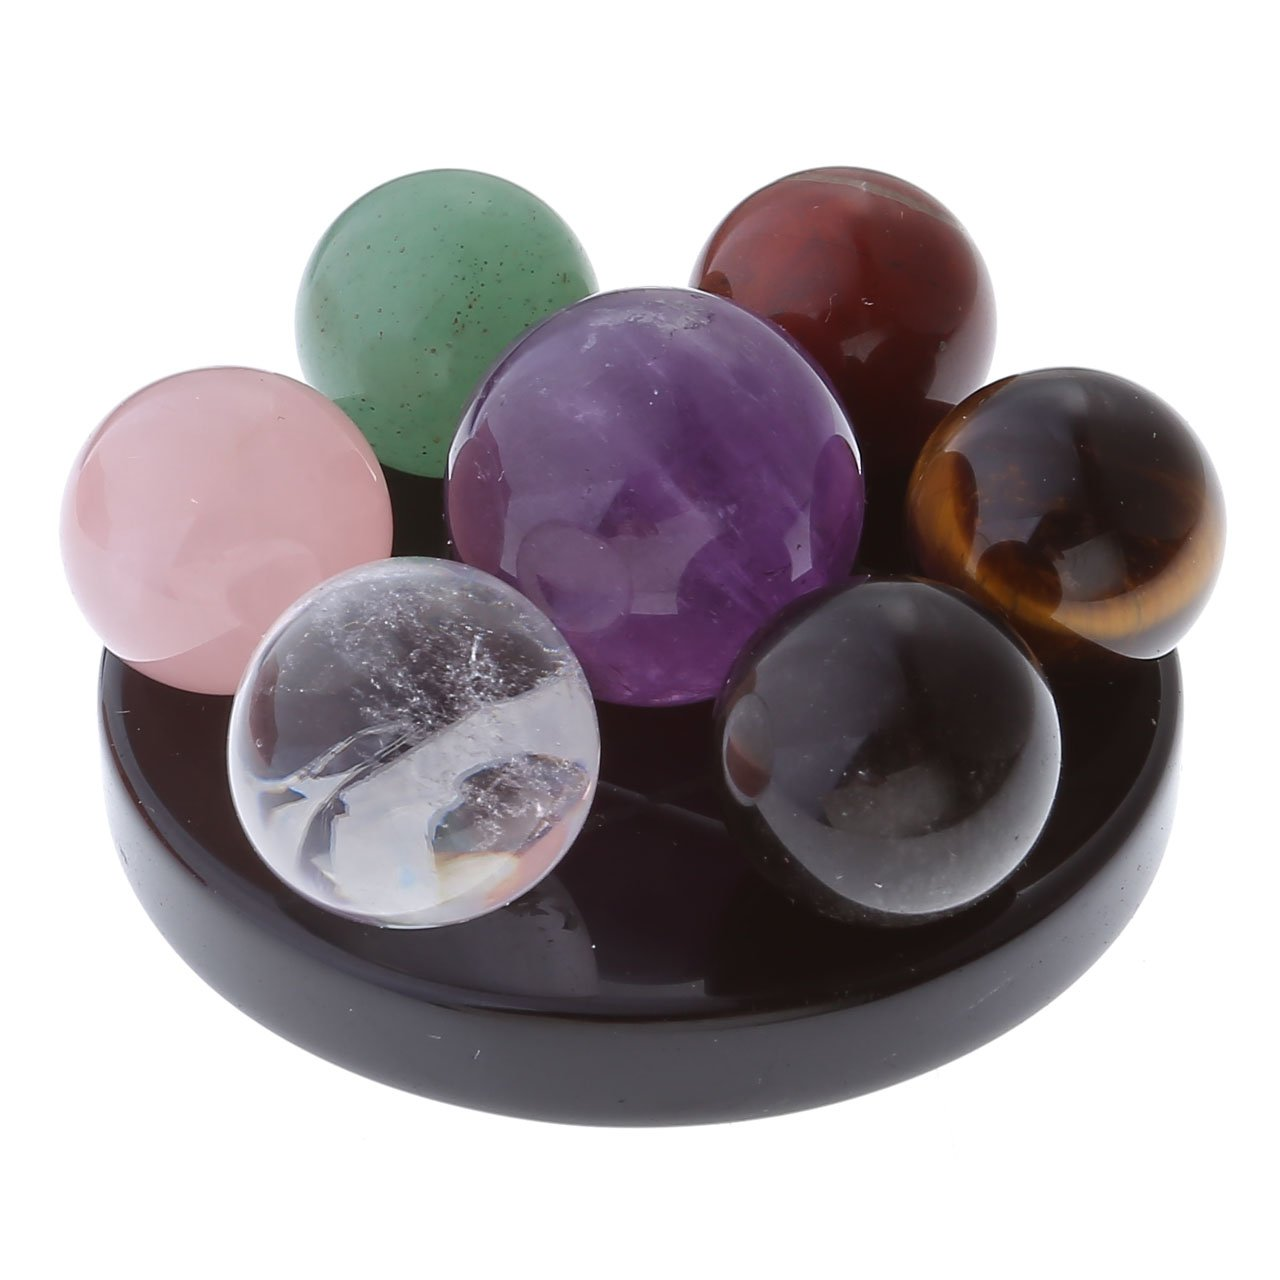 Top Plaza 7 Chakra Star Group Rock Healing Energy Gemstone Crystal Balls Statue Figurines Array on Obsidian Stand, for Chakra Healing, Devination, Home Decor(16 MM Balls Obsidian Stand) JSDUK60495